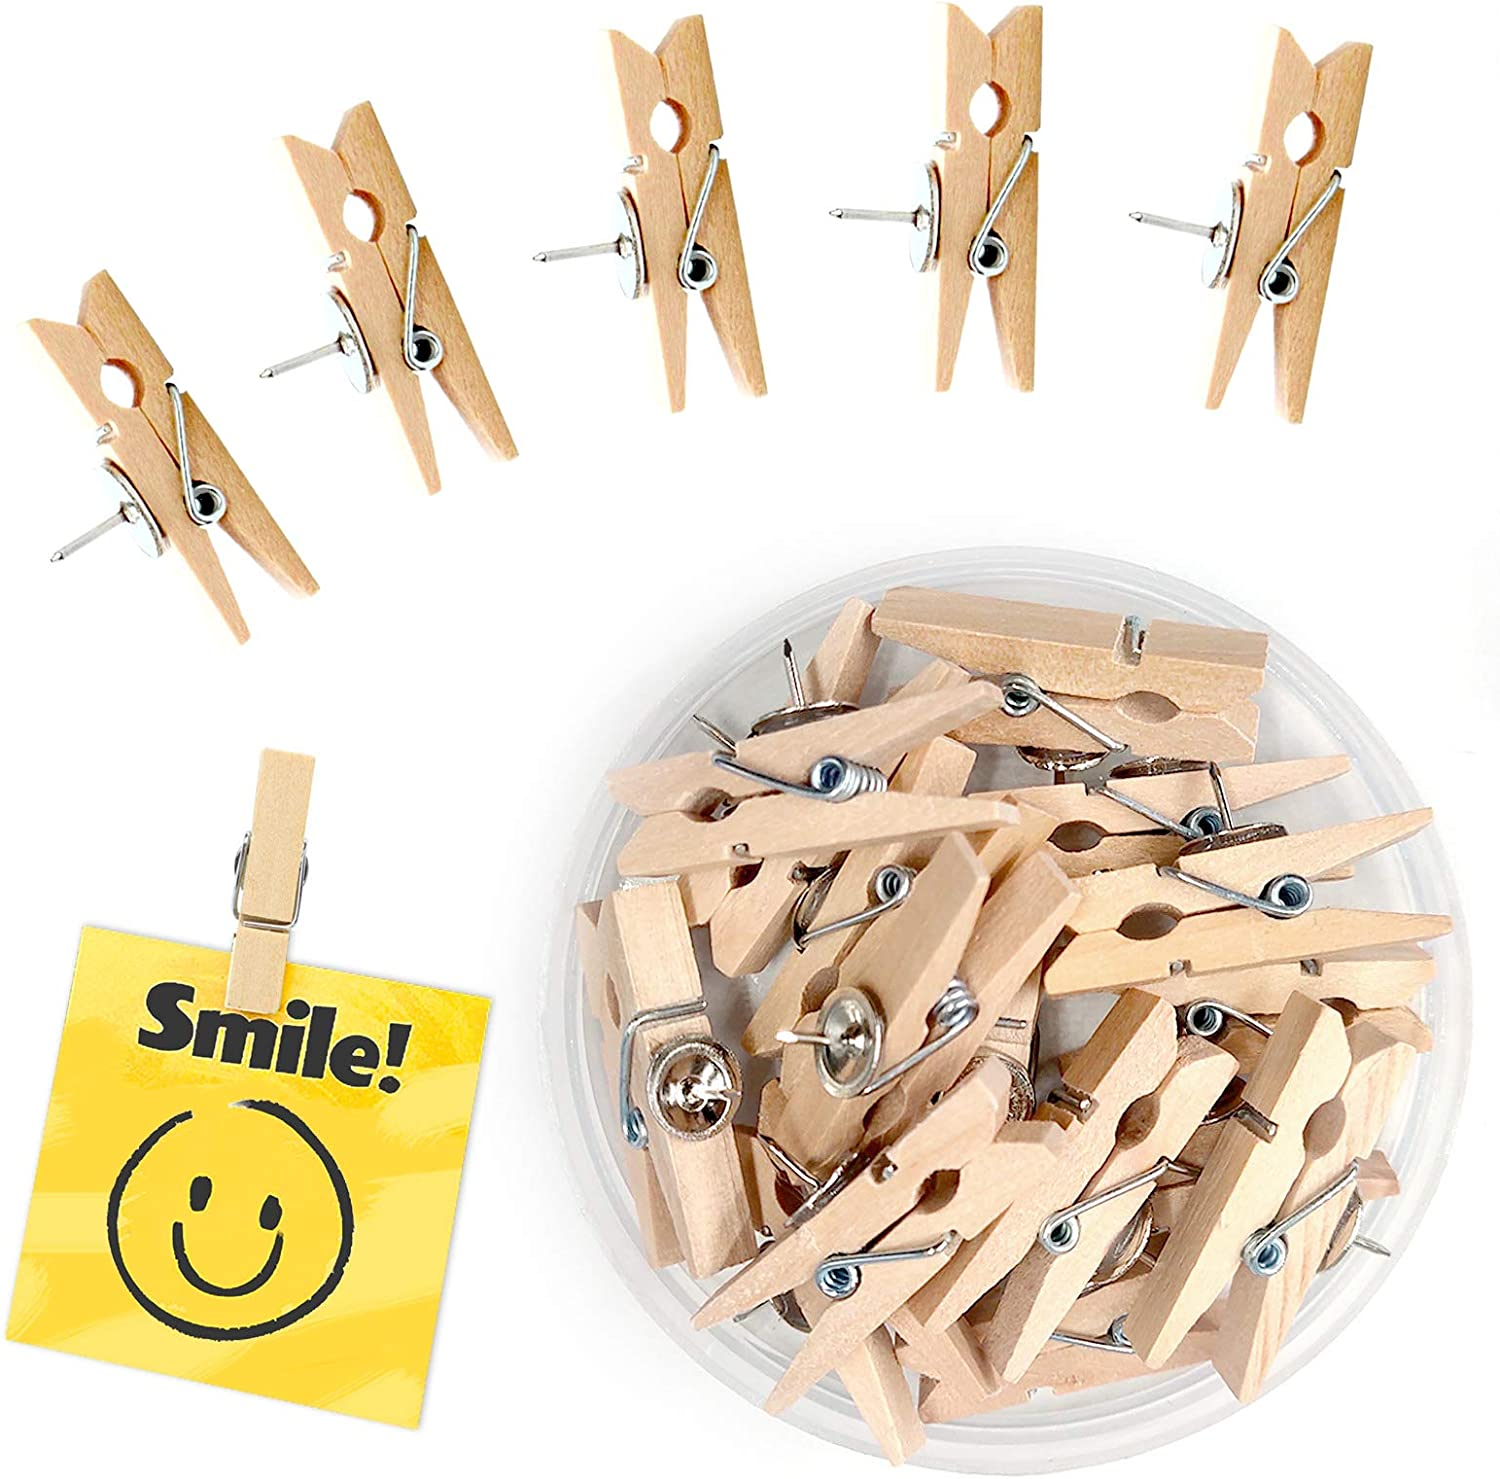 Recommended 30pcs Push Pins with lowest price Wooden Tacks for Pushpins Thumbtacks Clips